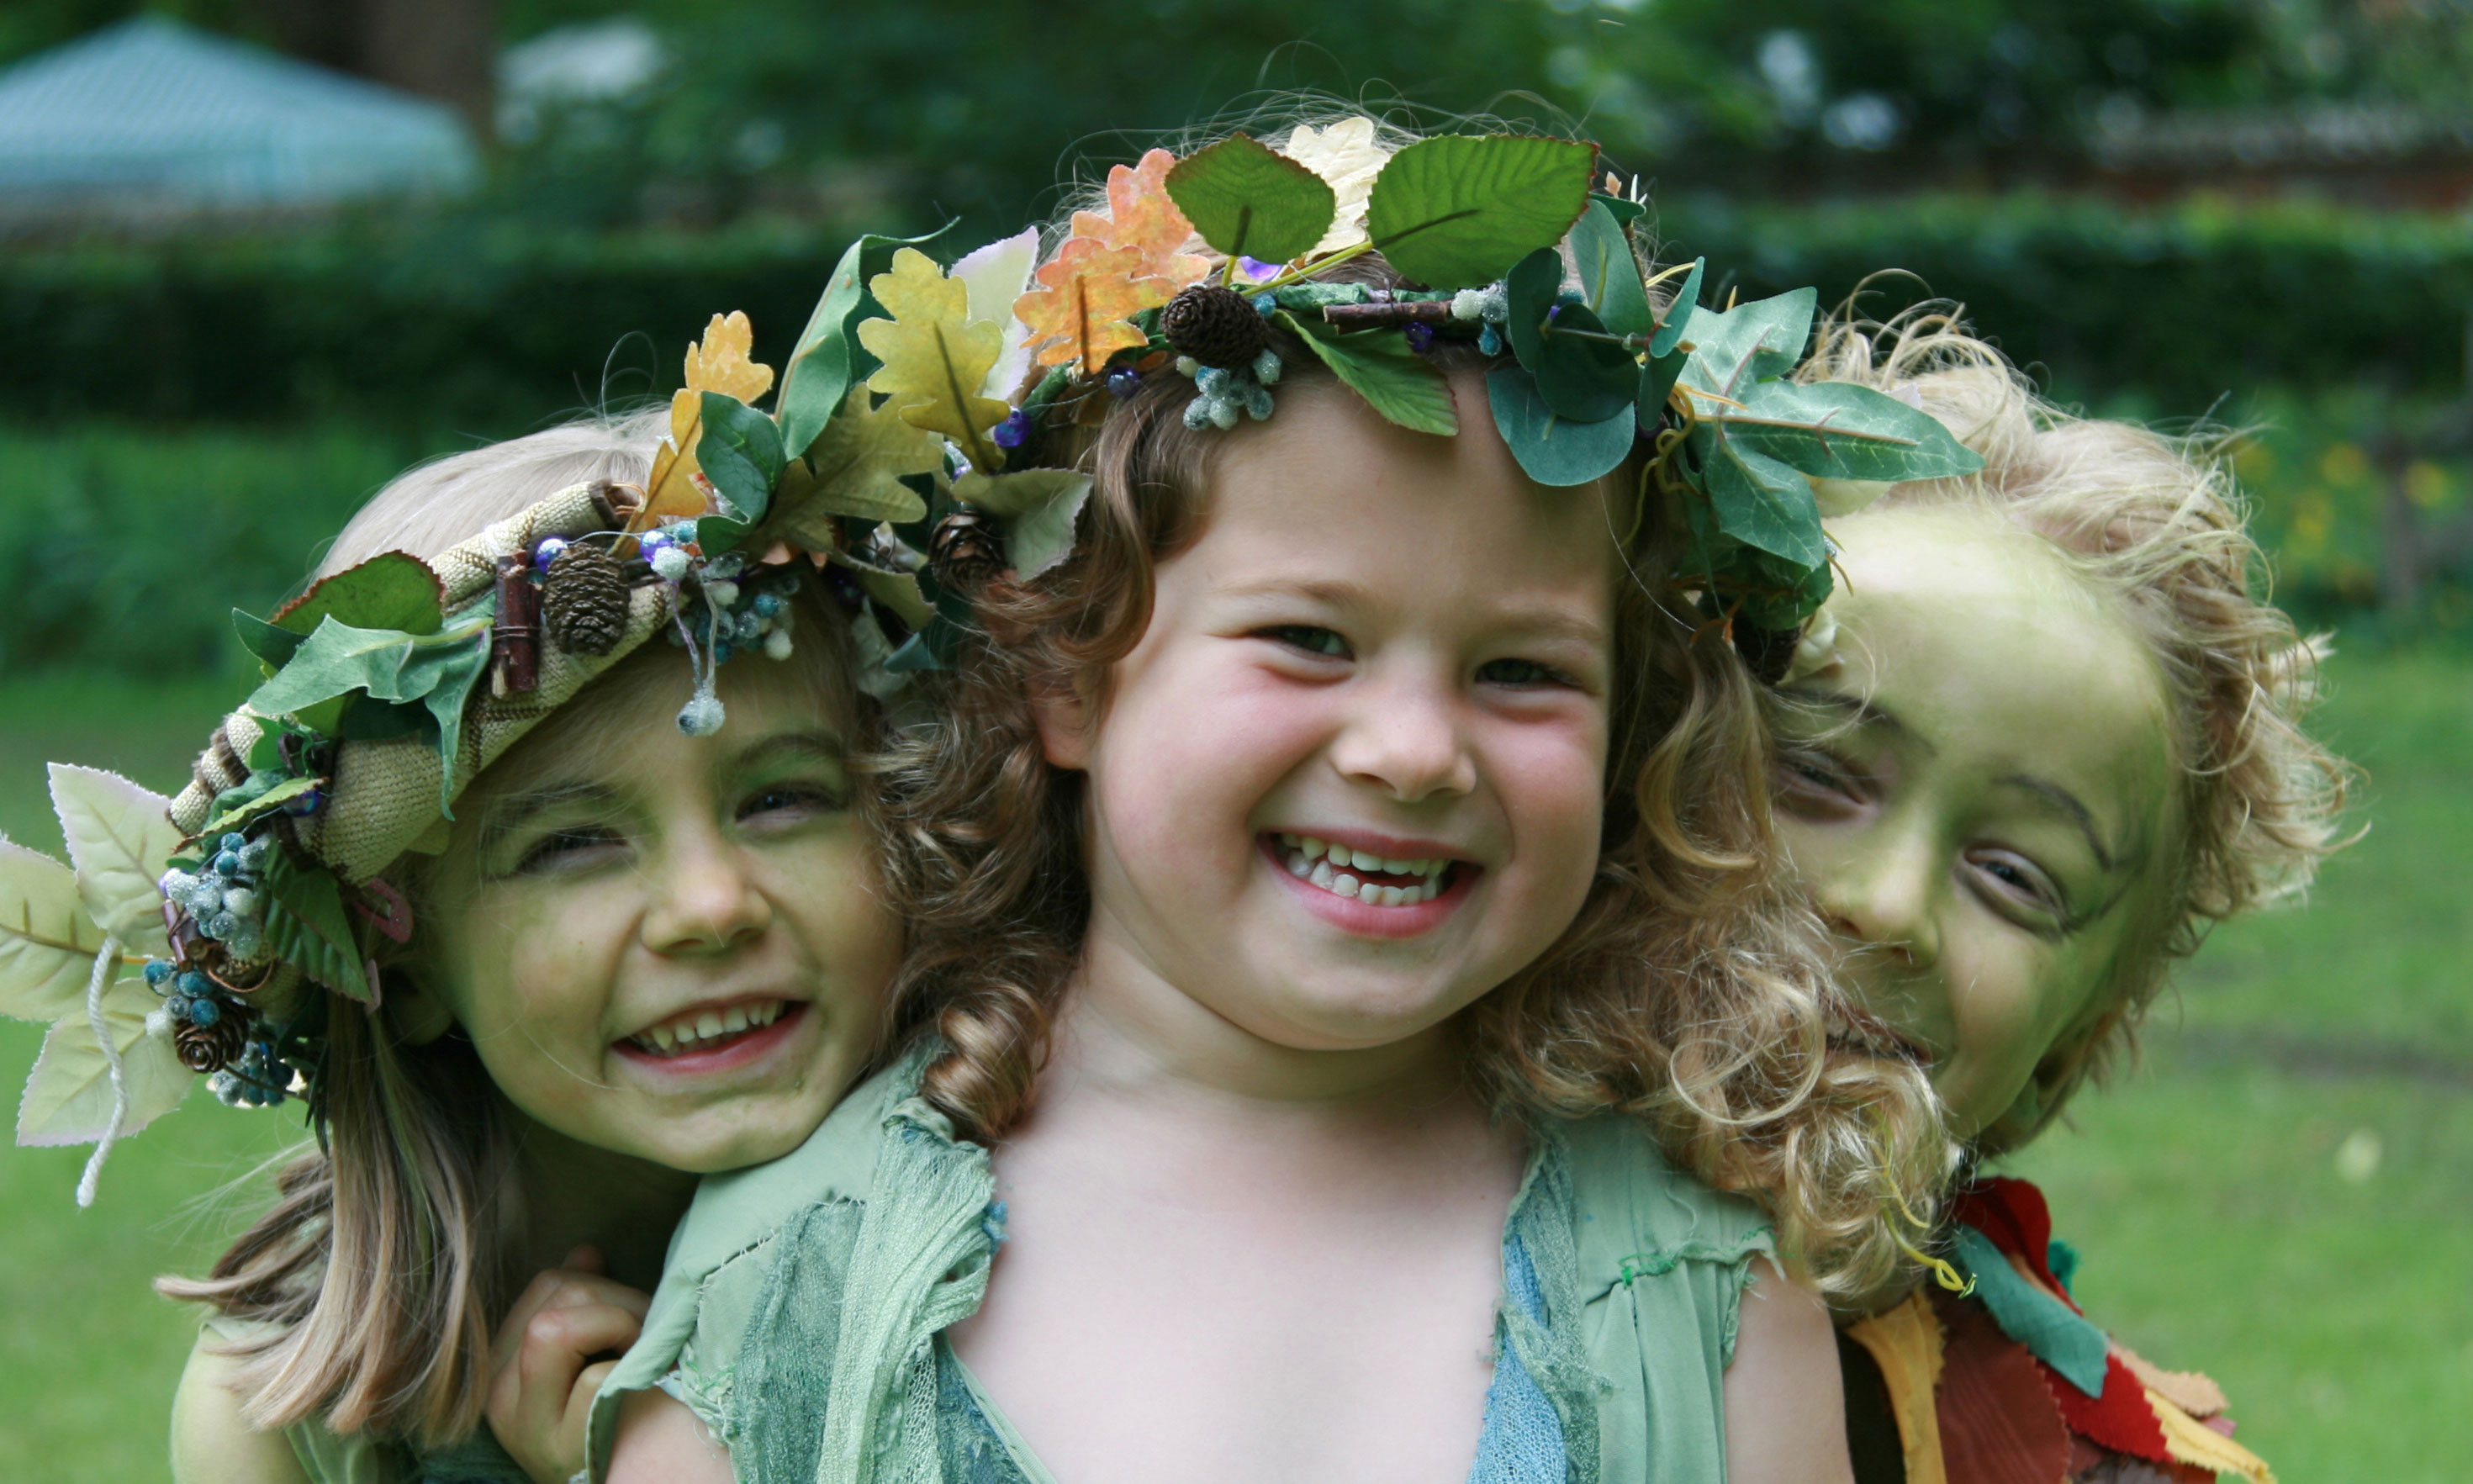 The 2007 Festival production of A Midsummer Night's Dream